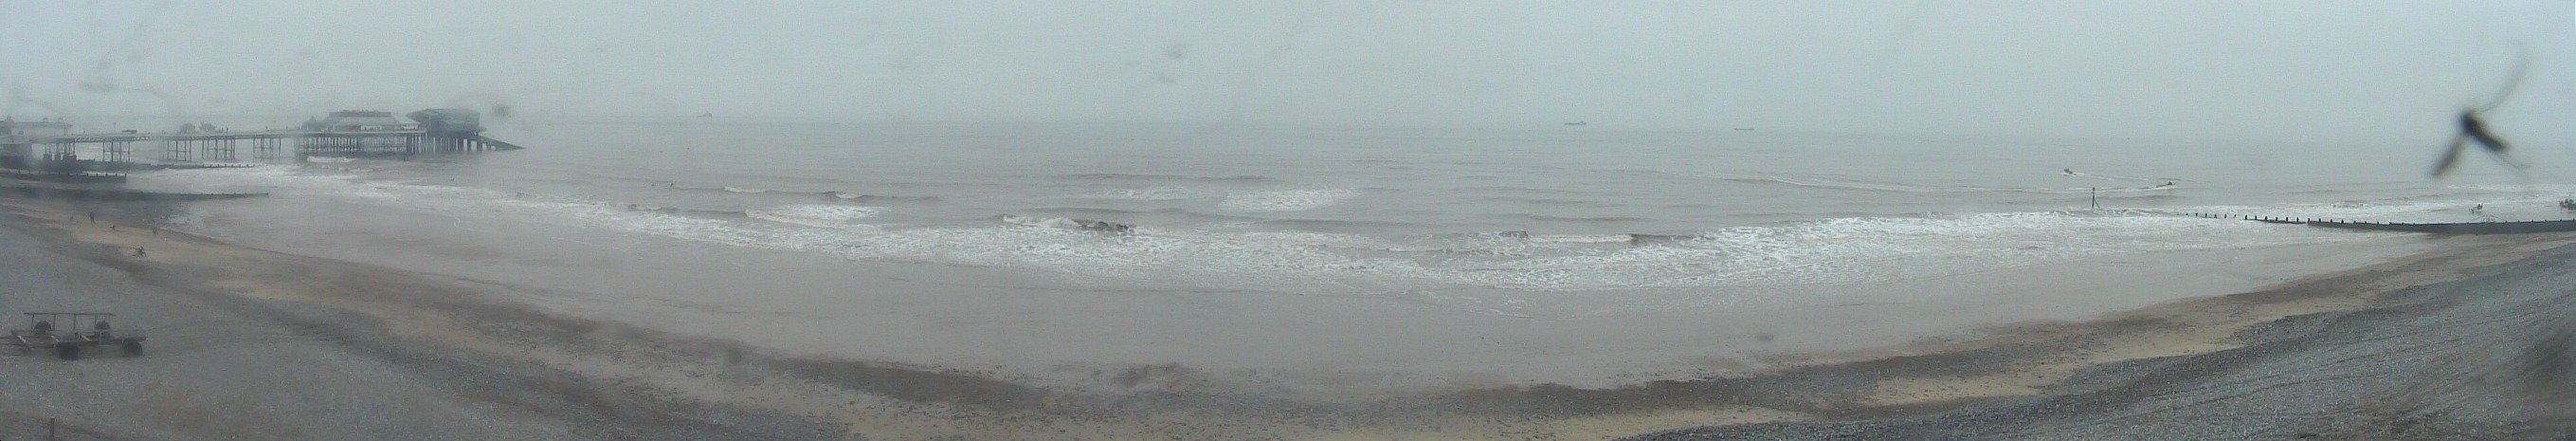 webcam Cromer East of England